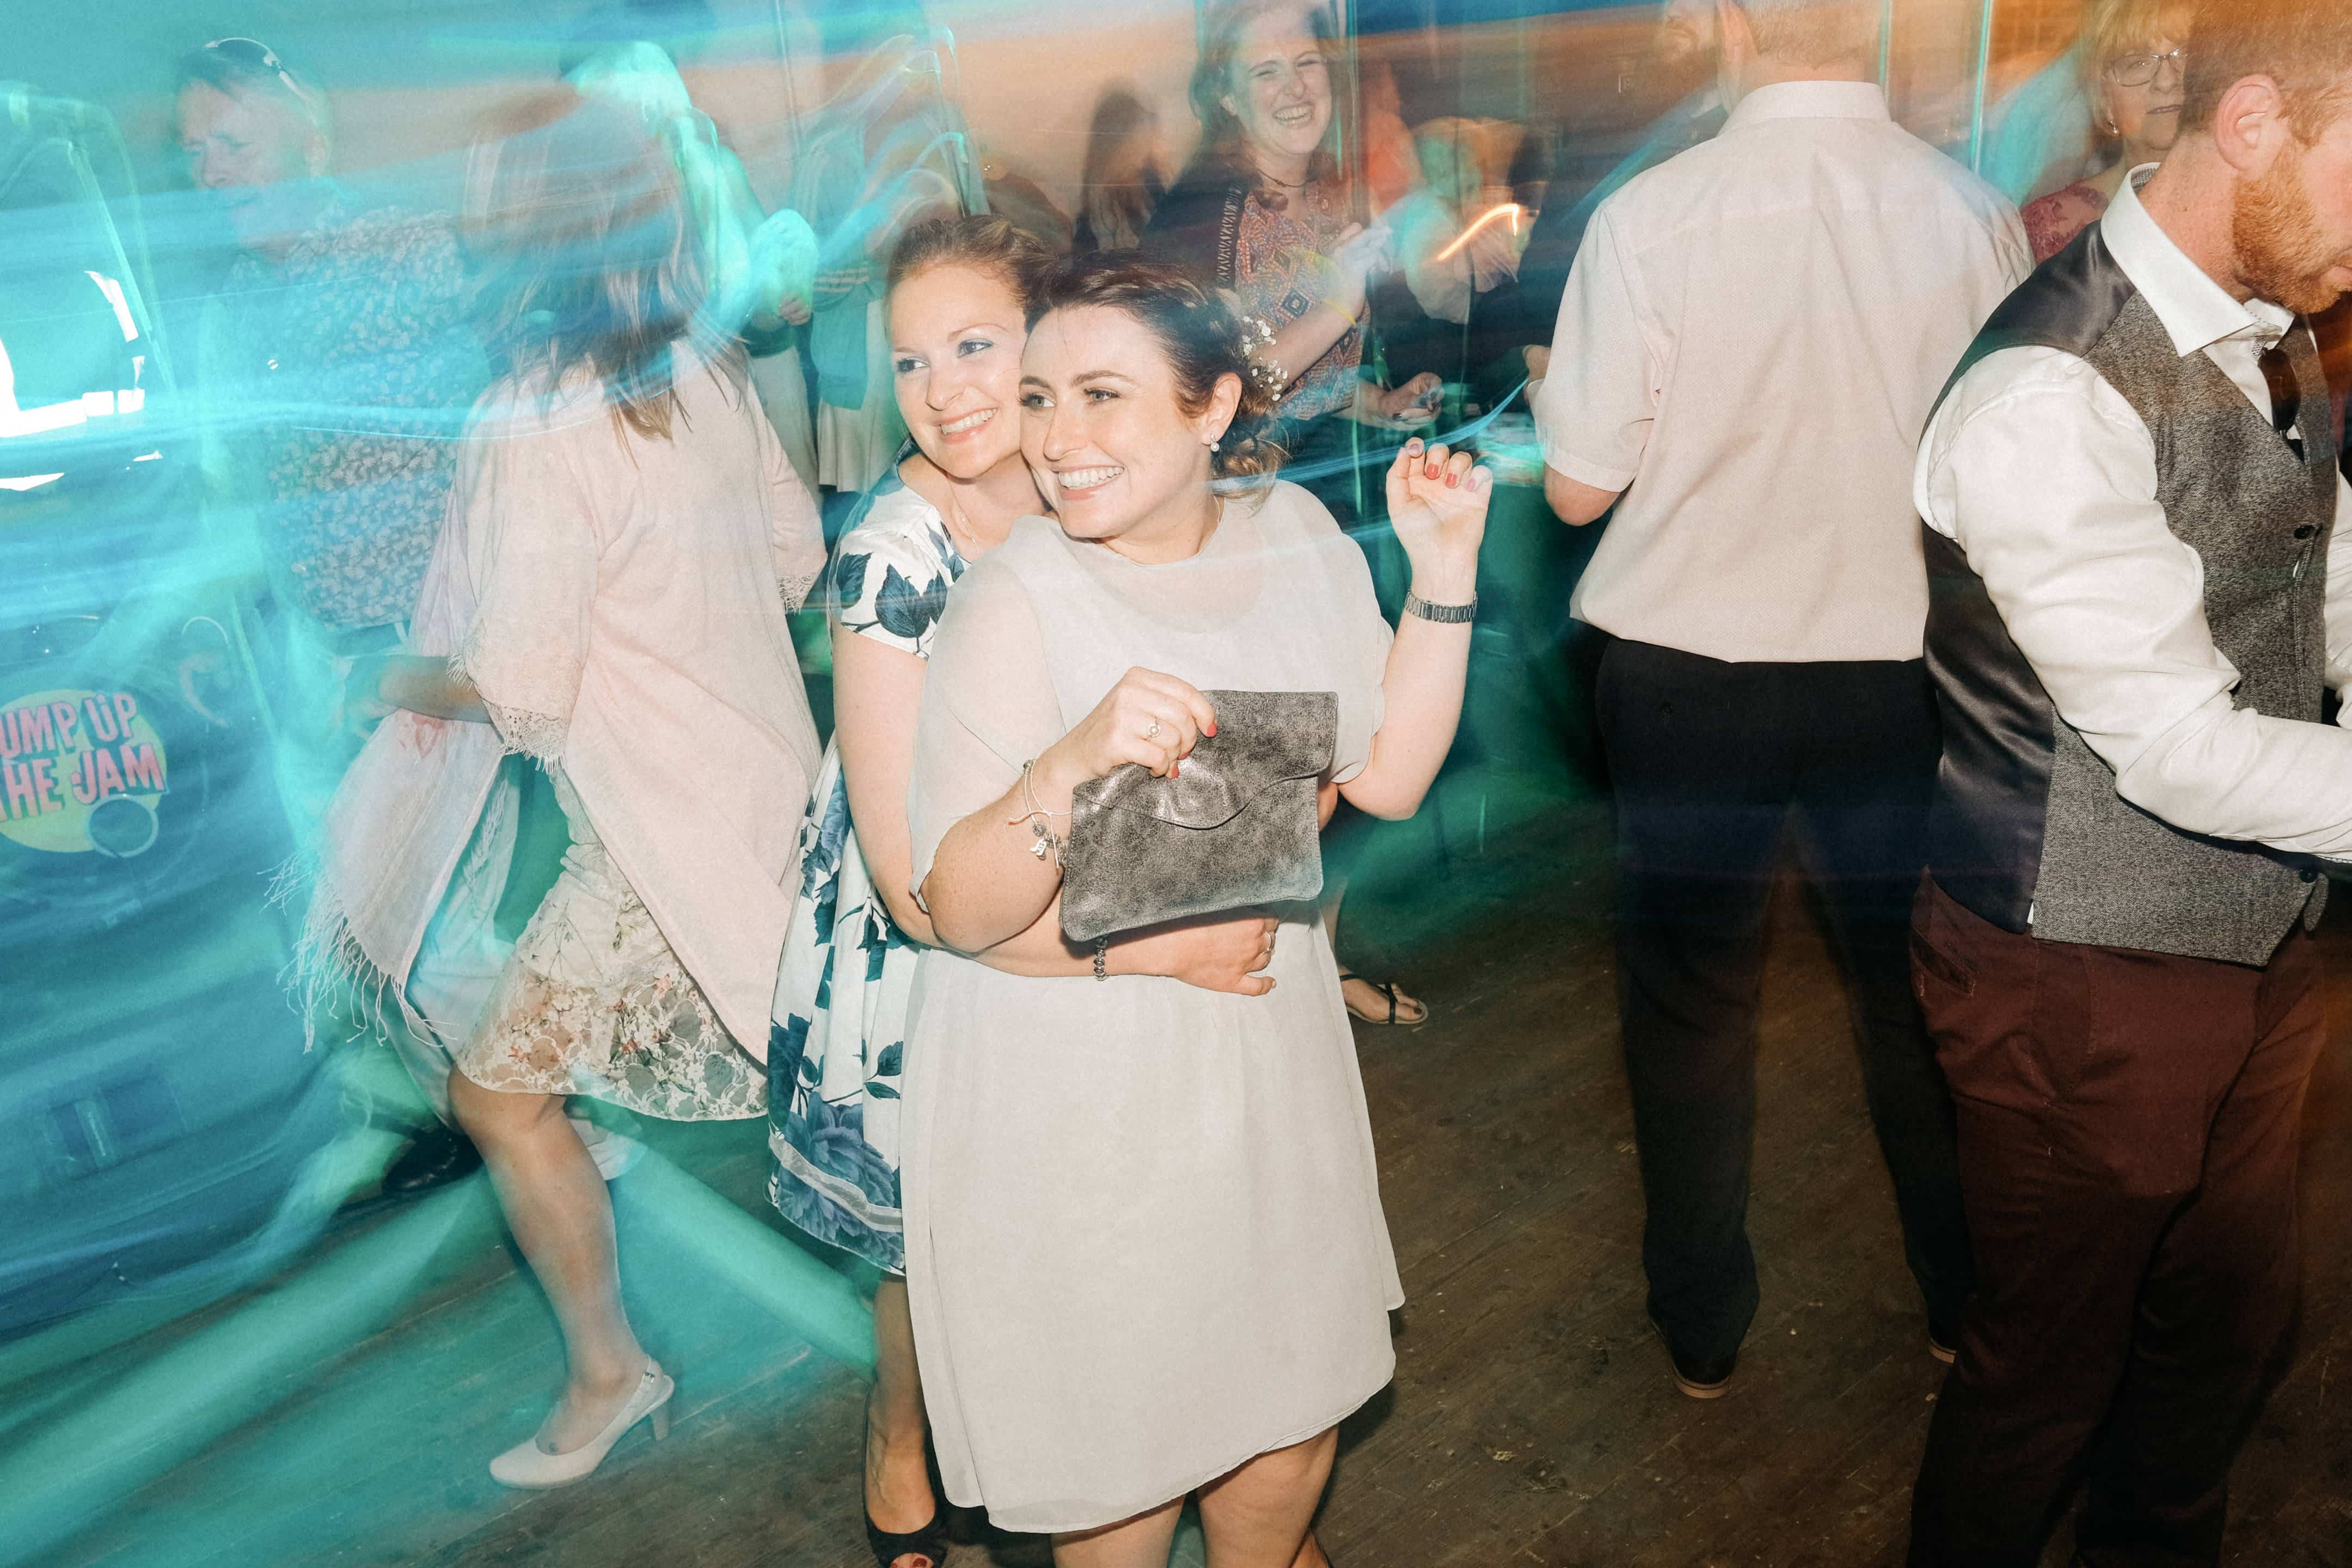 Dancing at Homemade Wedding Reception Wexford